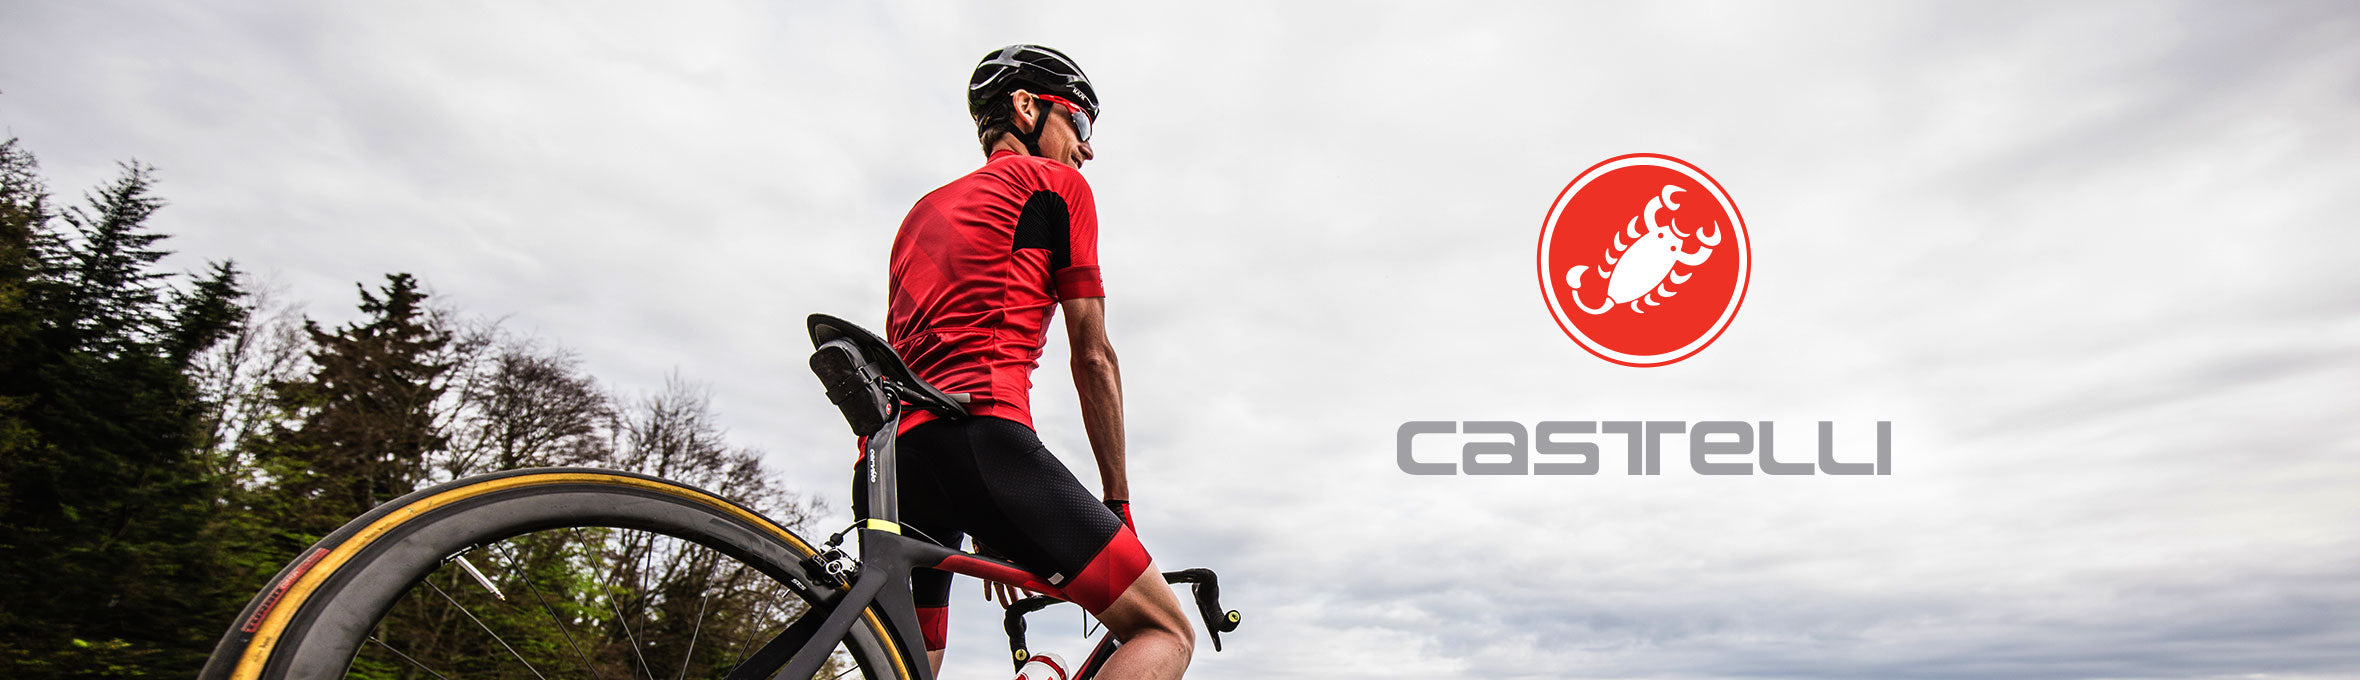 Castelli | Spring/Summer 2018 collection